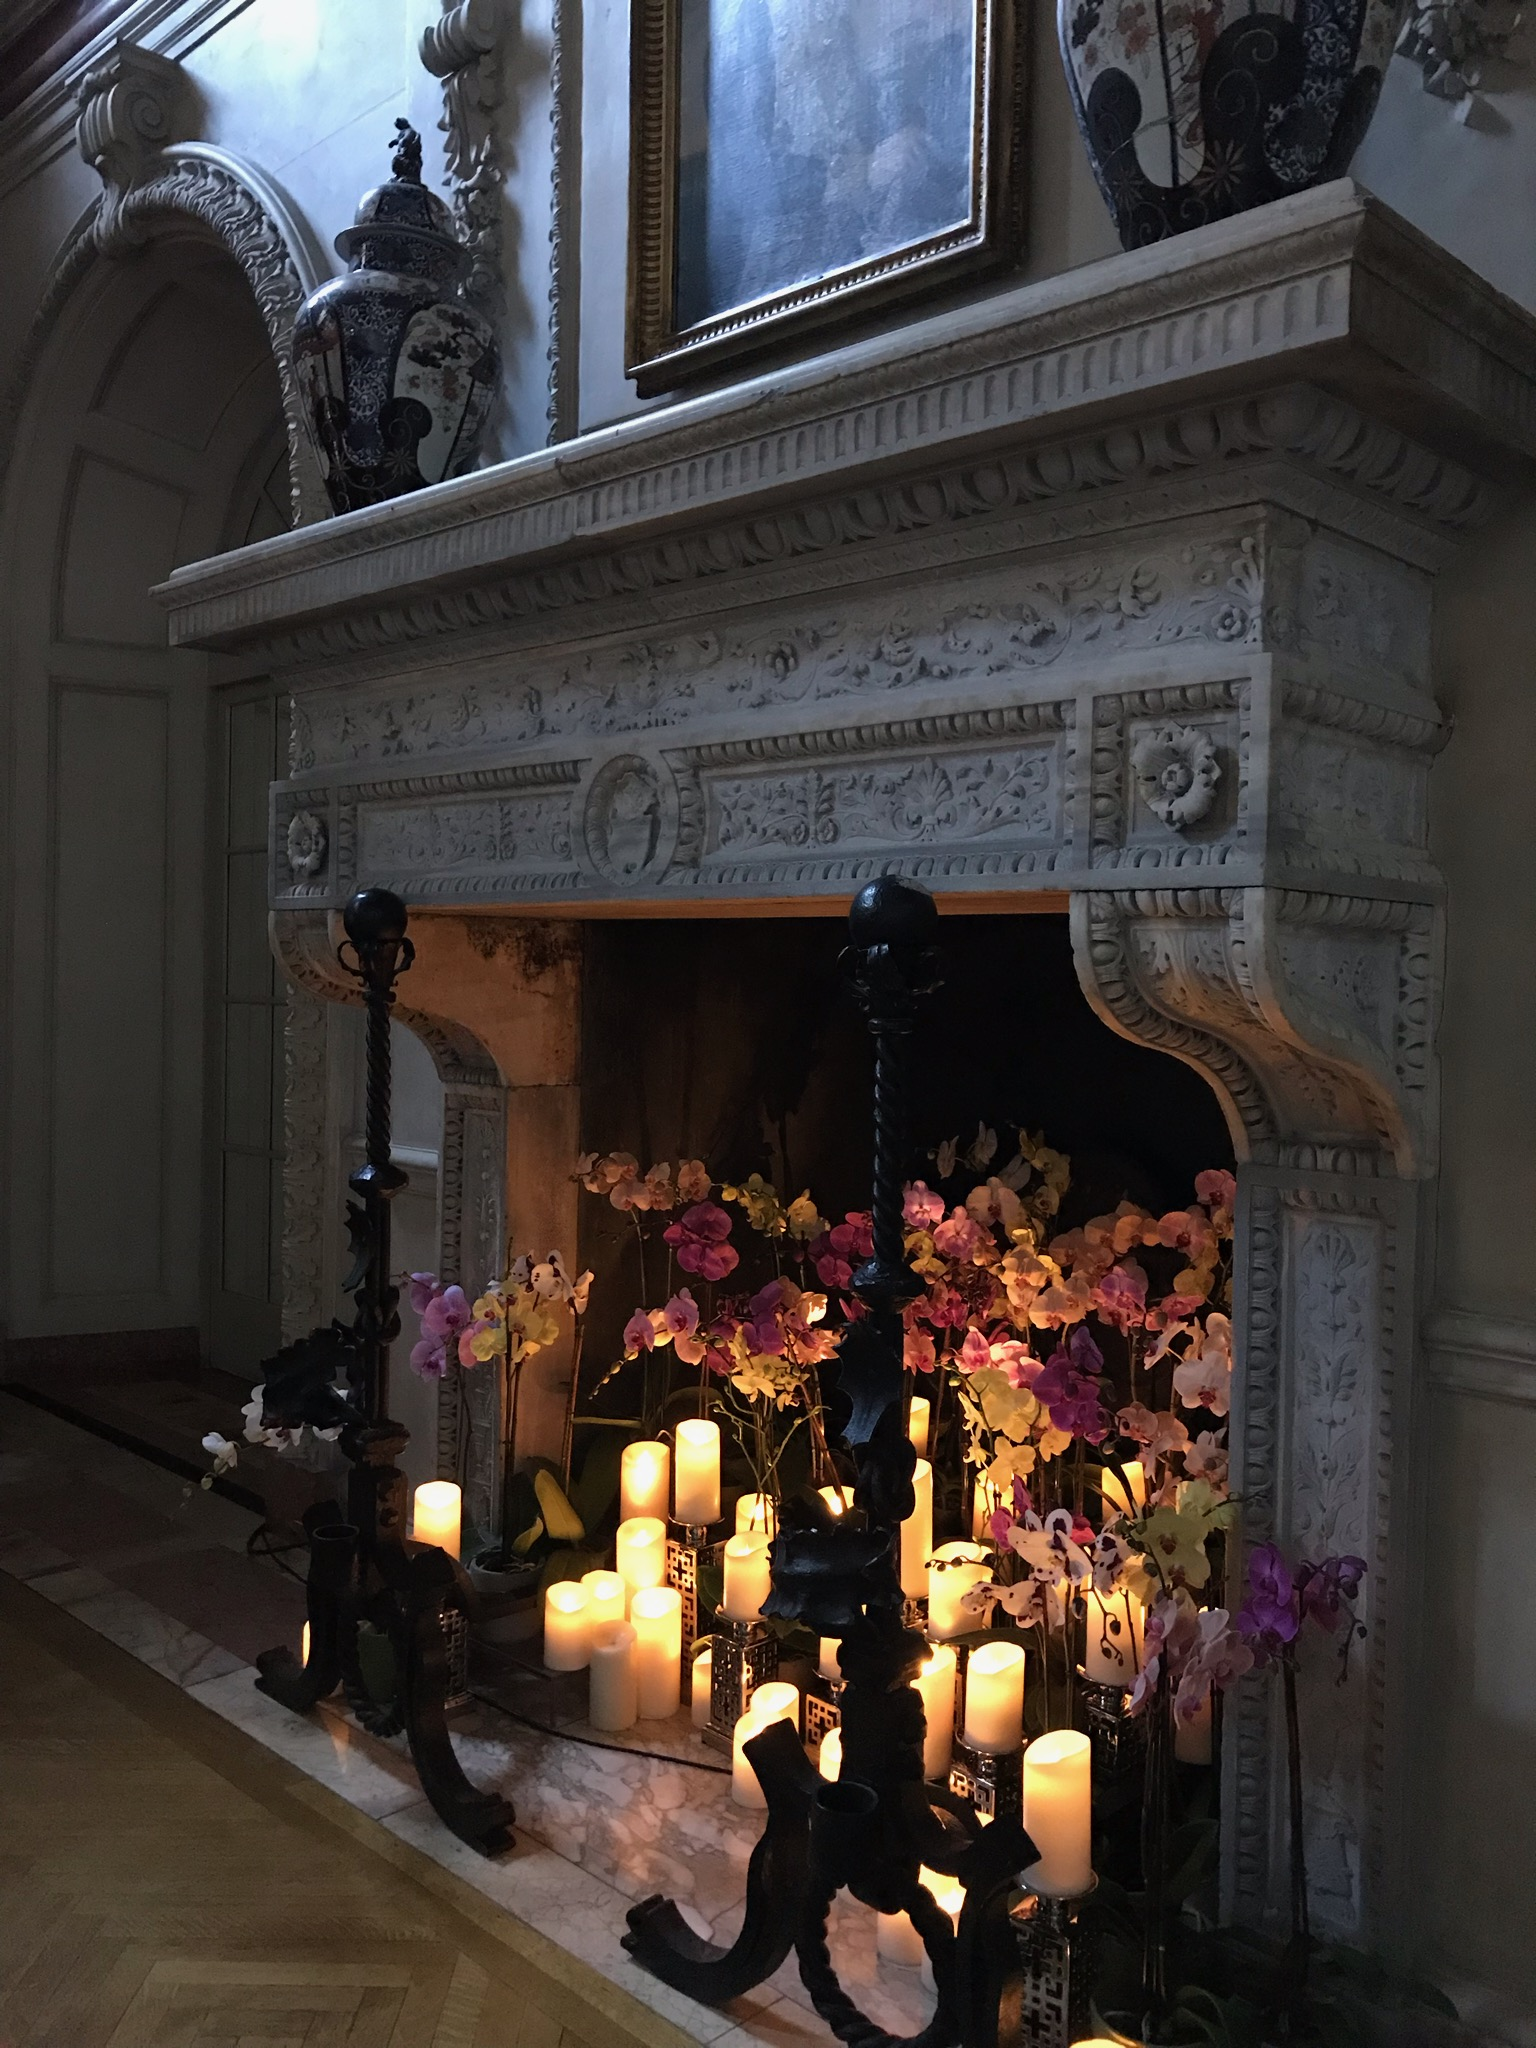 h2>Fireplace brought to life</h2>